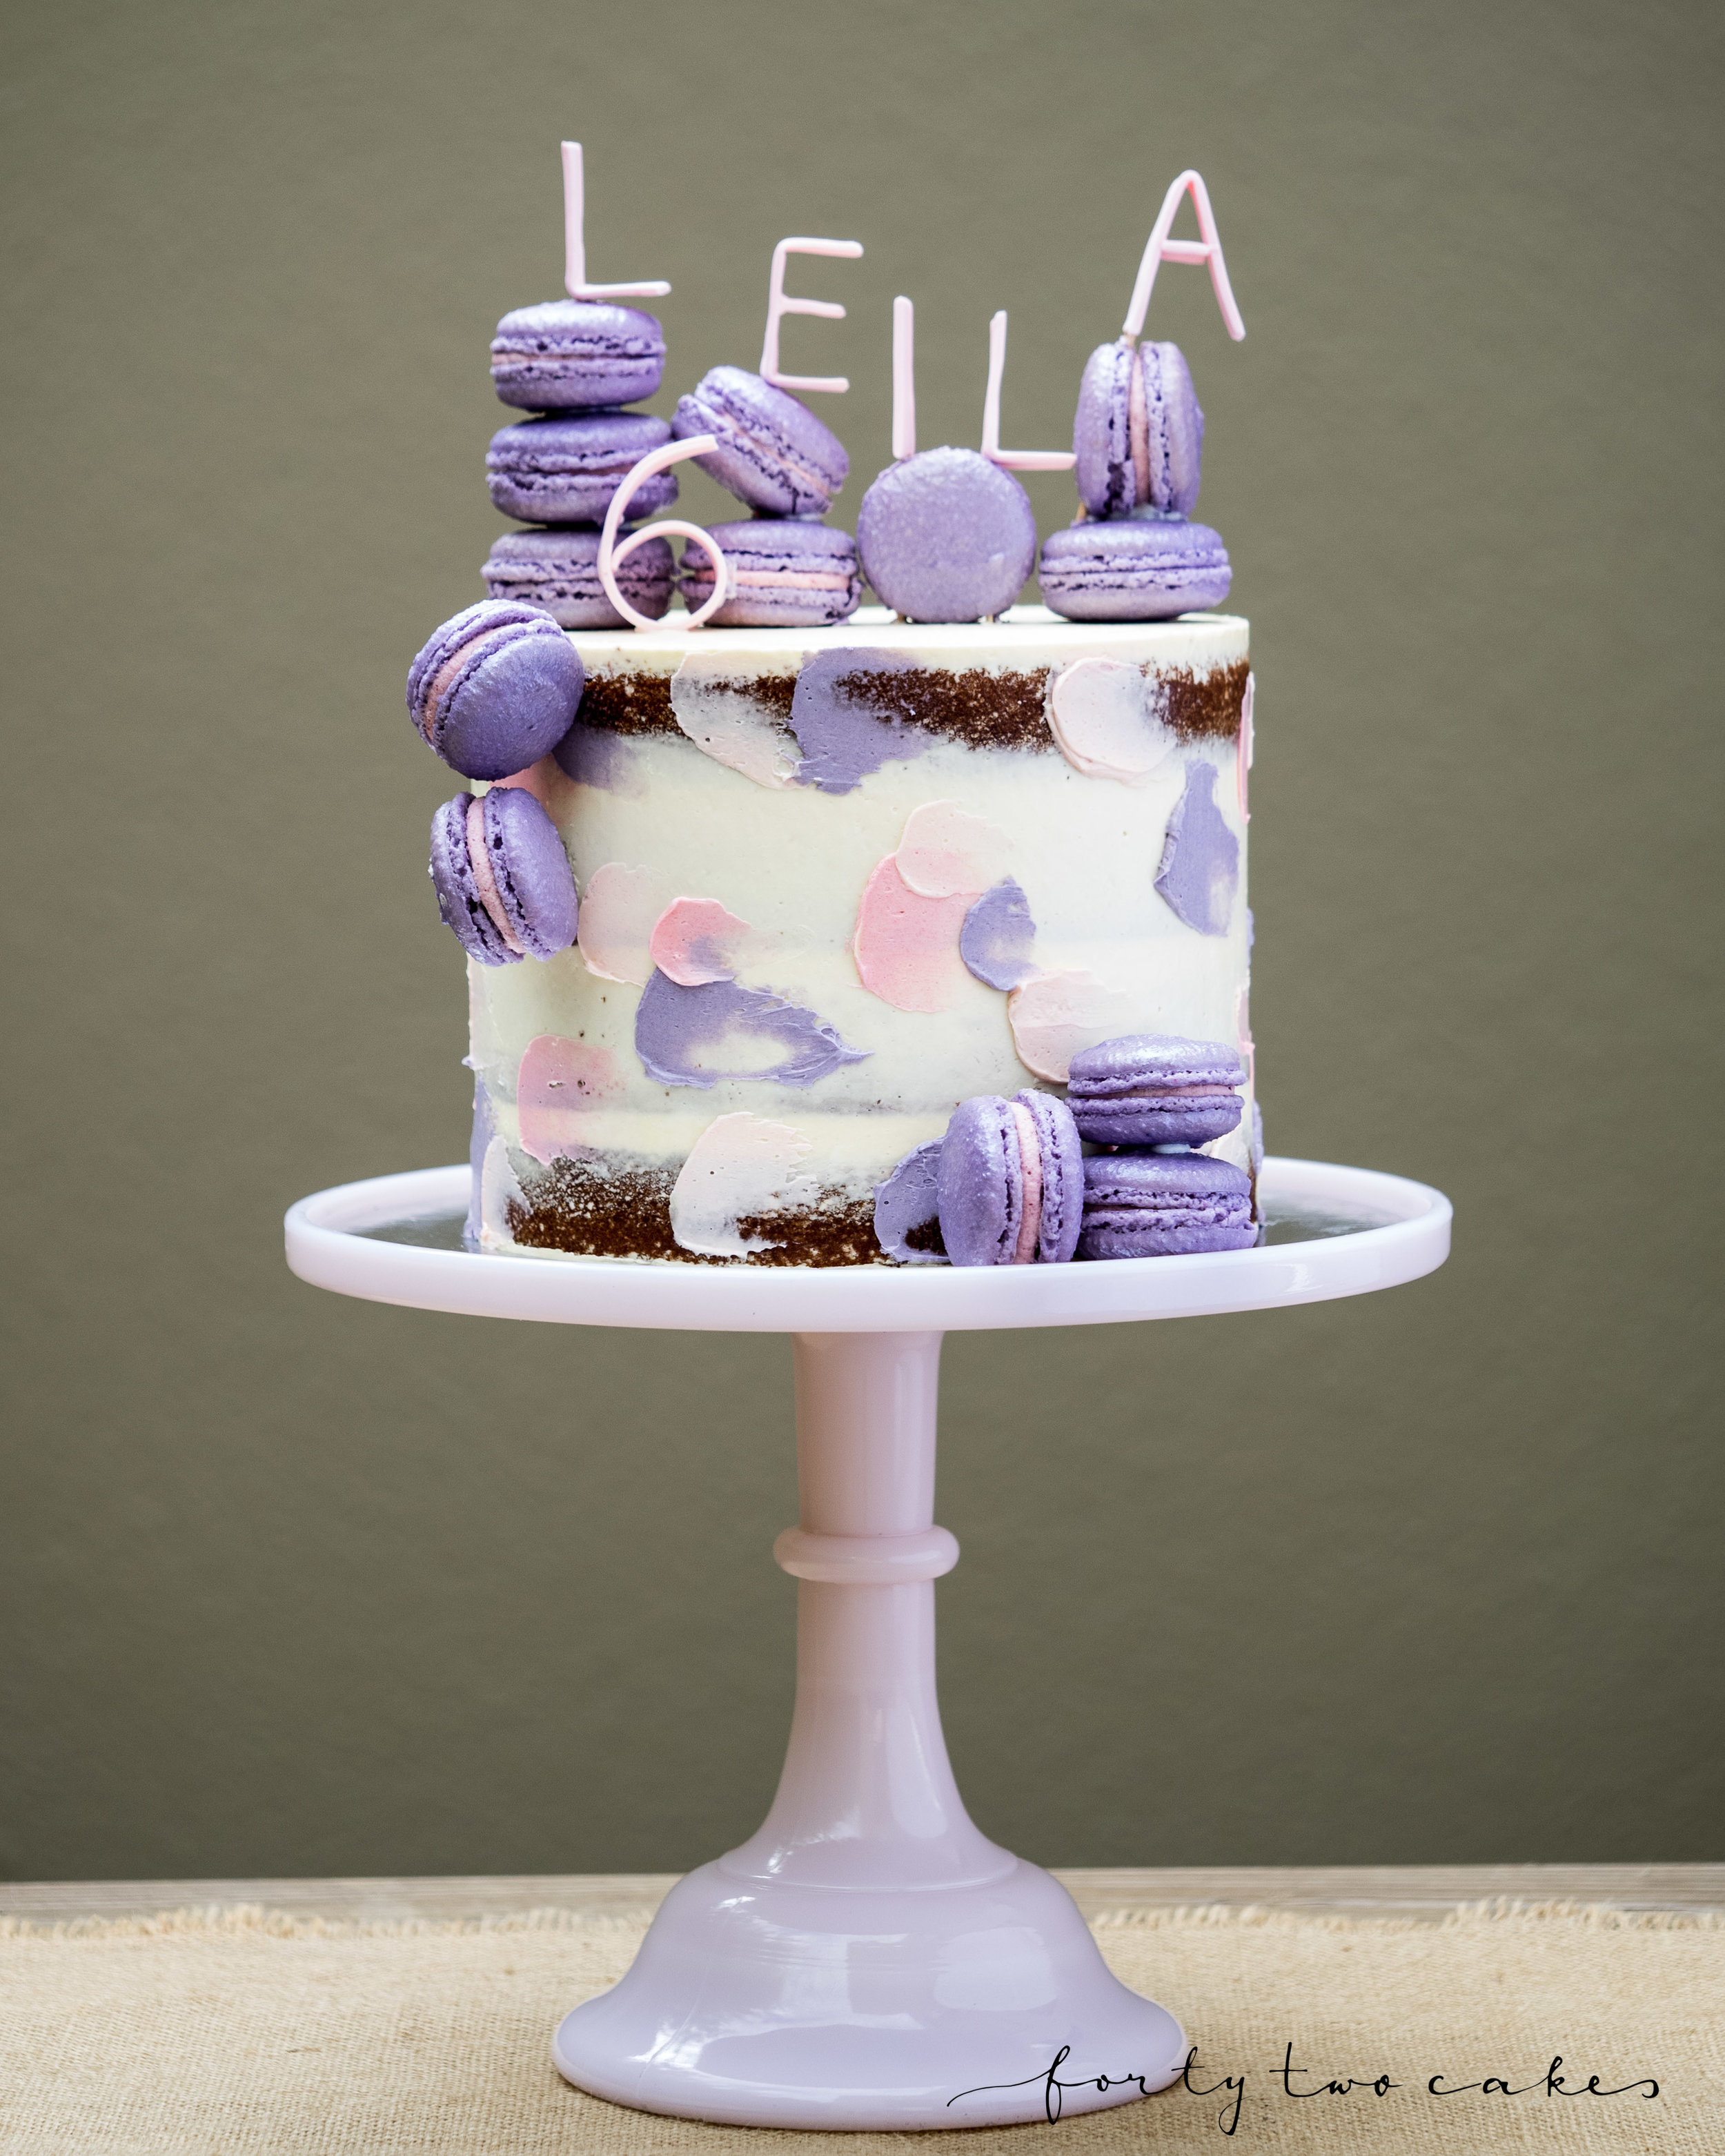 Forty-Two Cakes - Seminaked-19.jpg